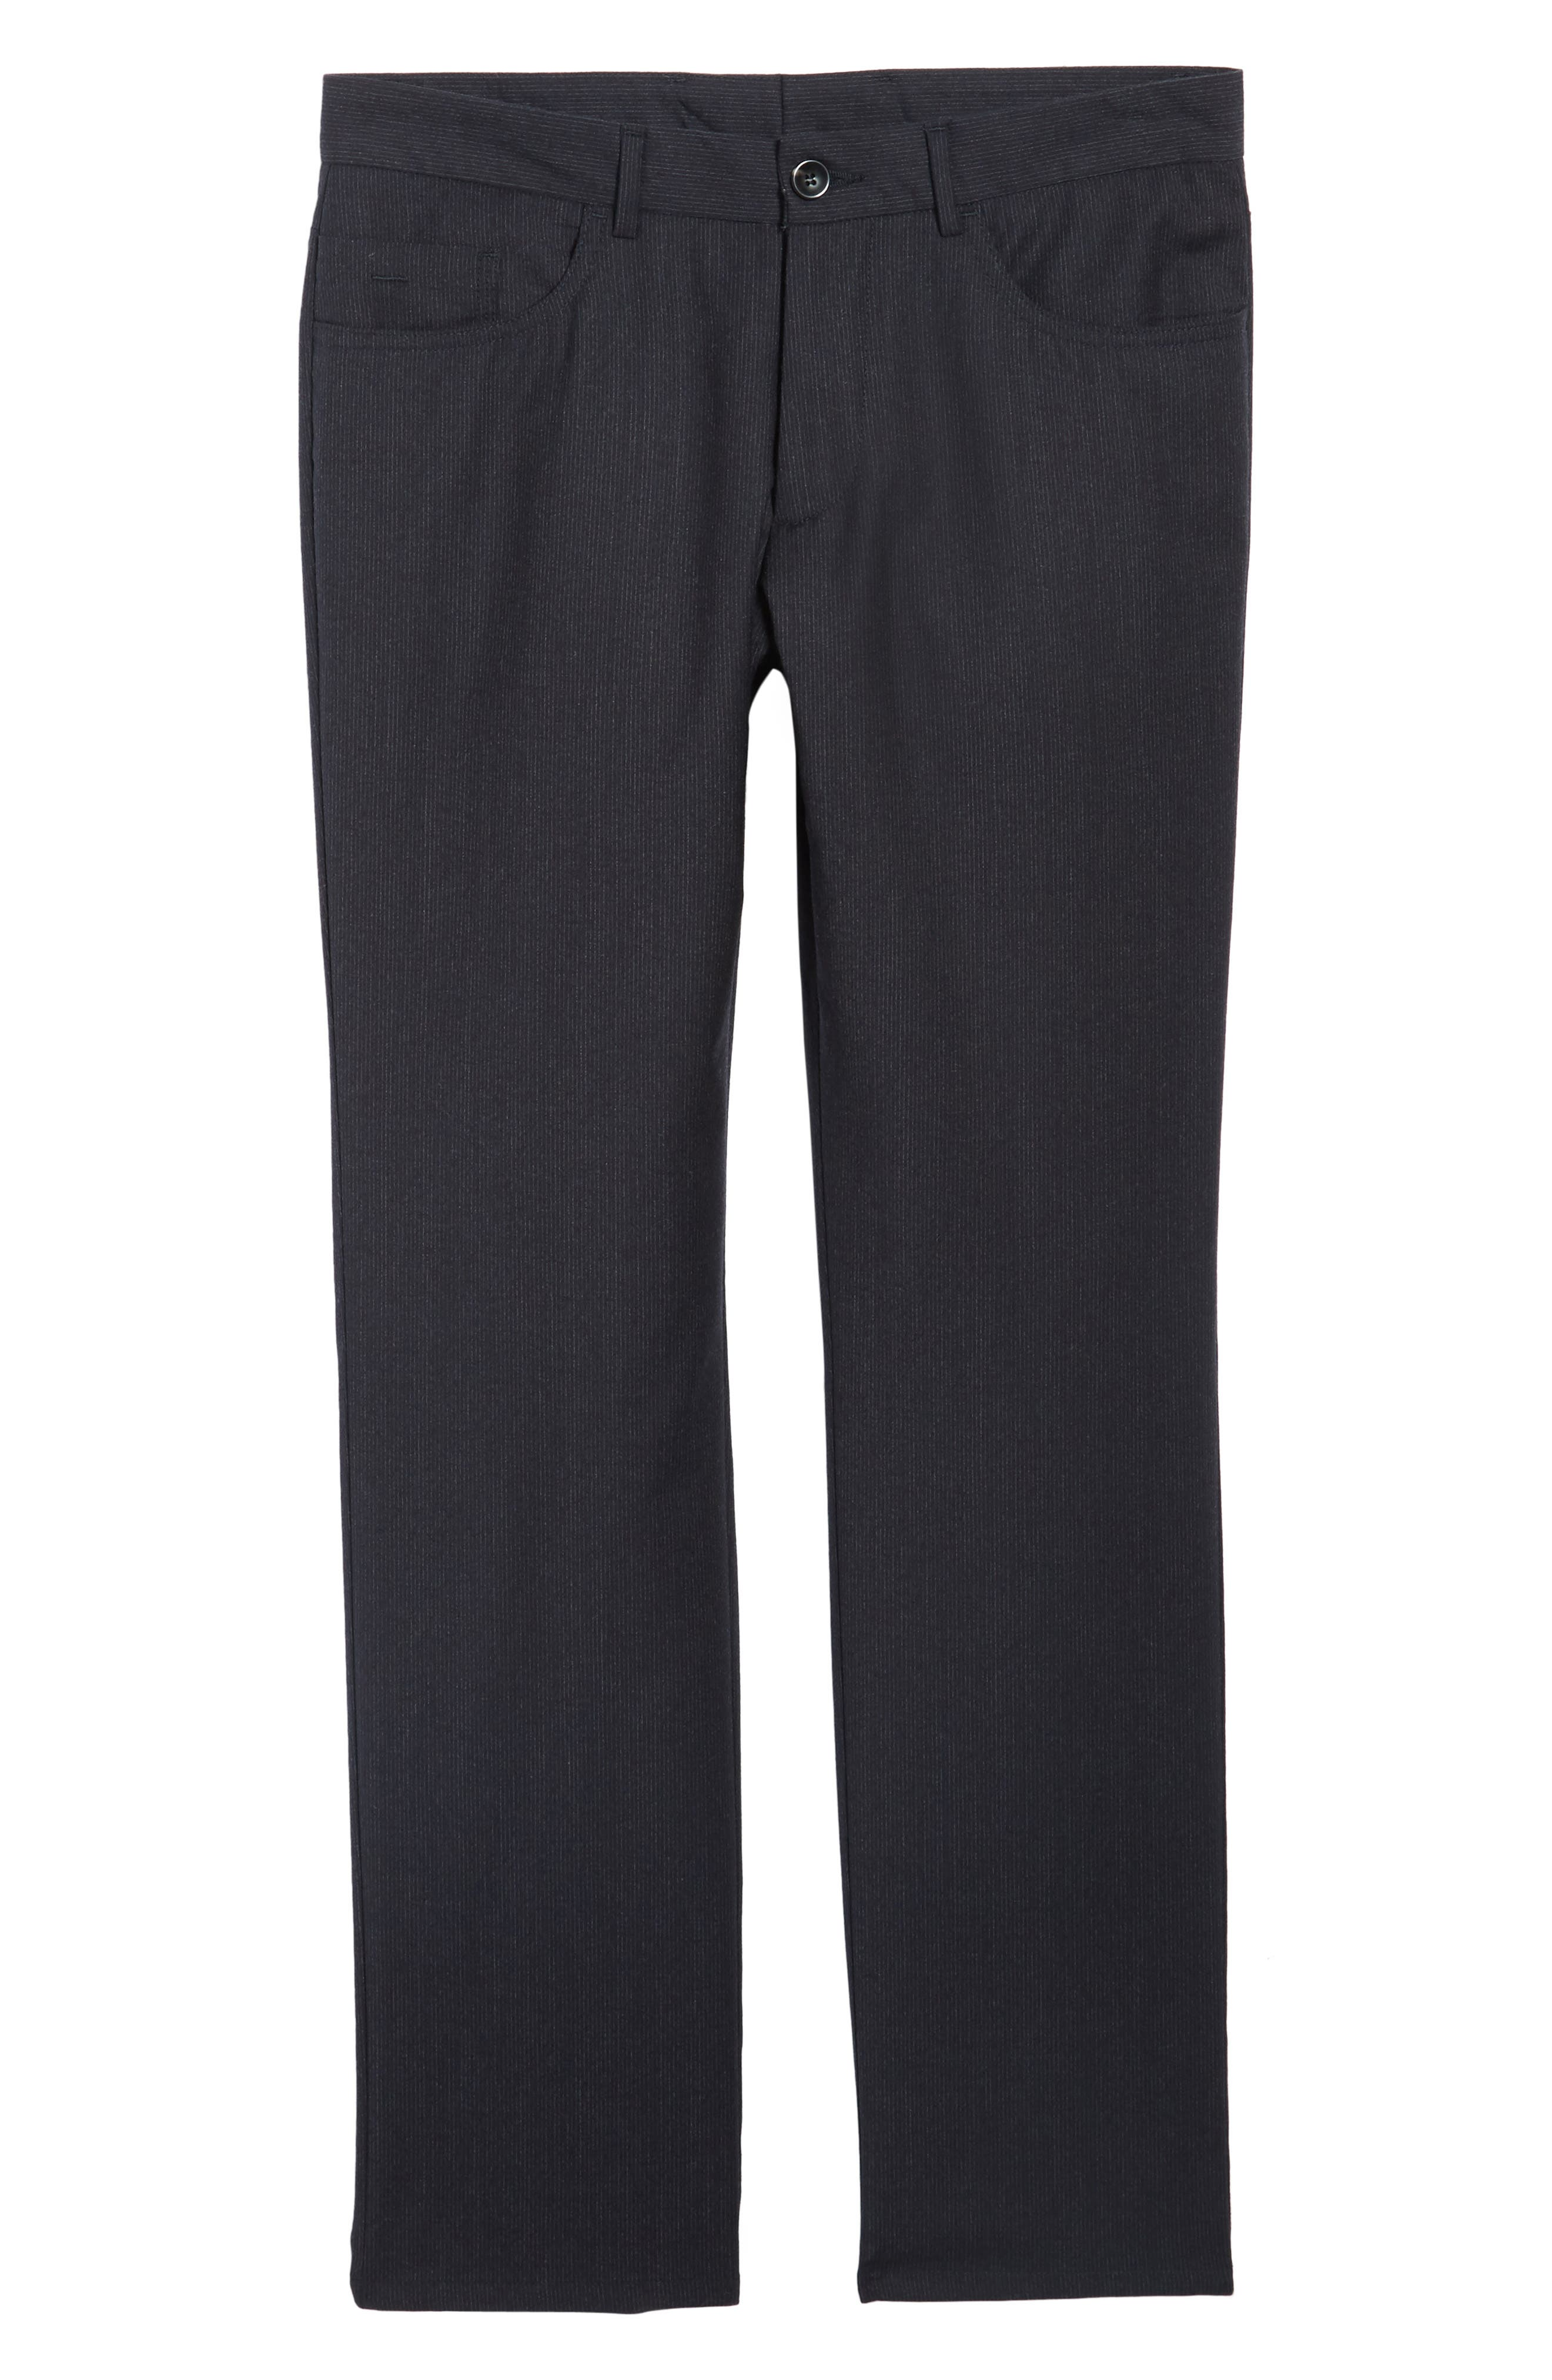 Flat Front Stripe Stretch Wool Trousers,                             Alternate thumbnail 6, color,                             020